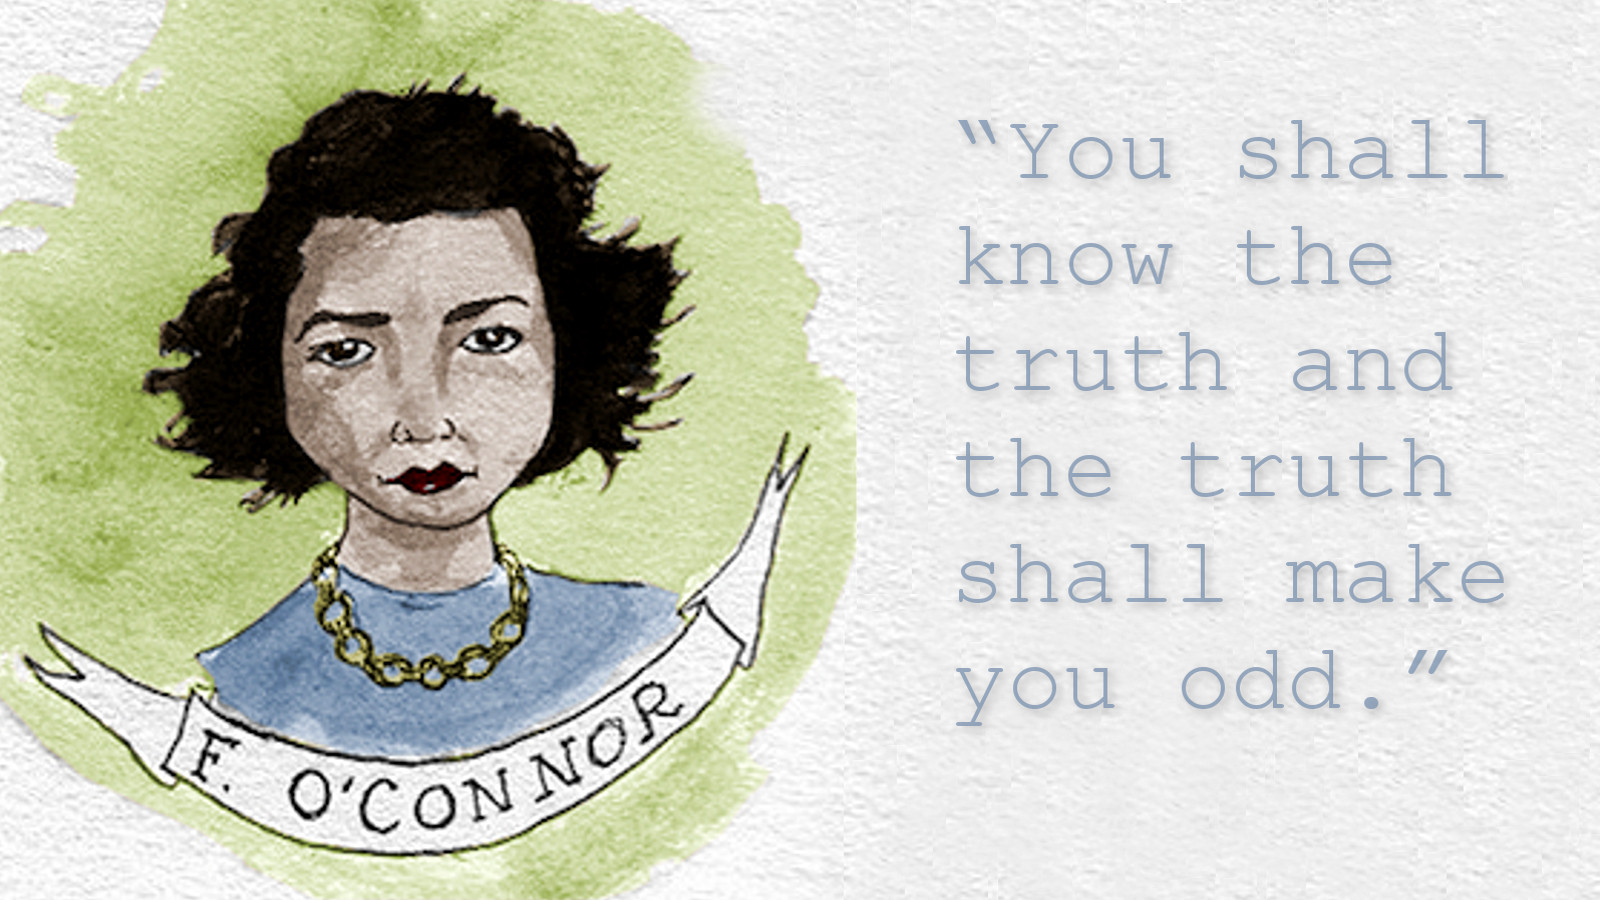 an analysis of greenleaf by flannery oconner Greenleaf is a short story by flannery o'connor it was written in 1956 and published in 1965 in her short story collection everything that rises must convergeo'connor finished the collection during her final battle with lupus.